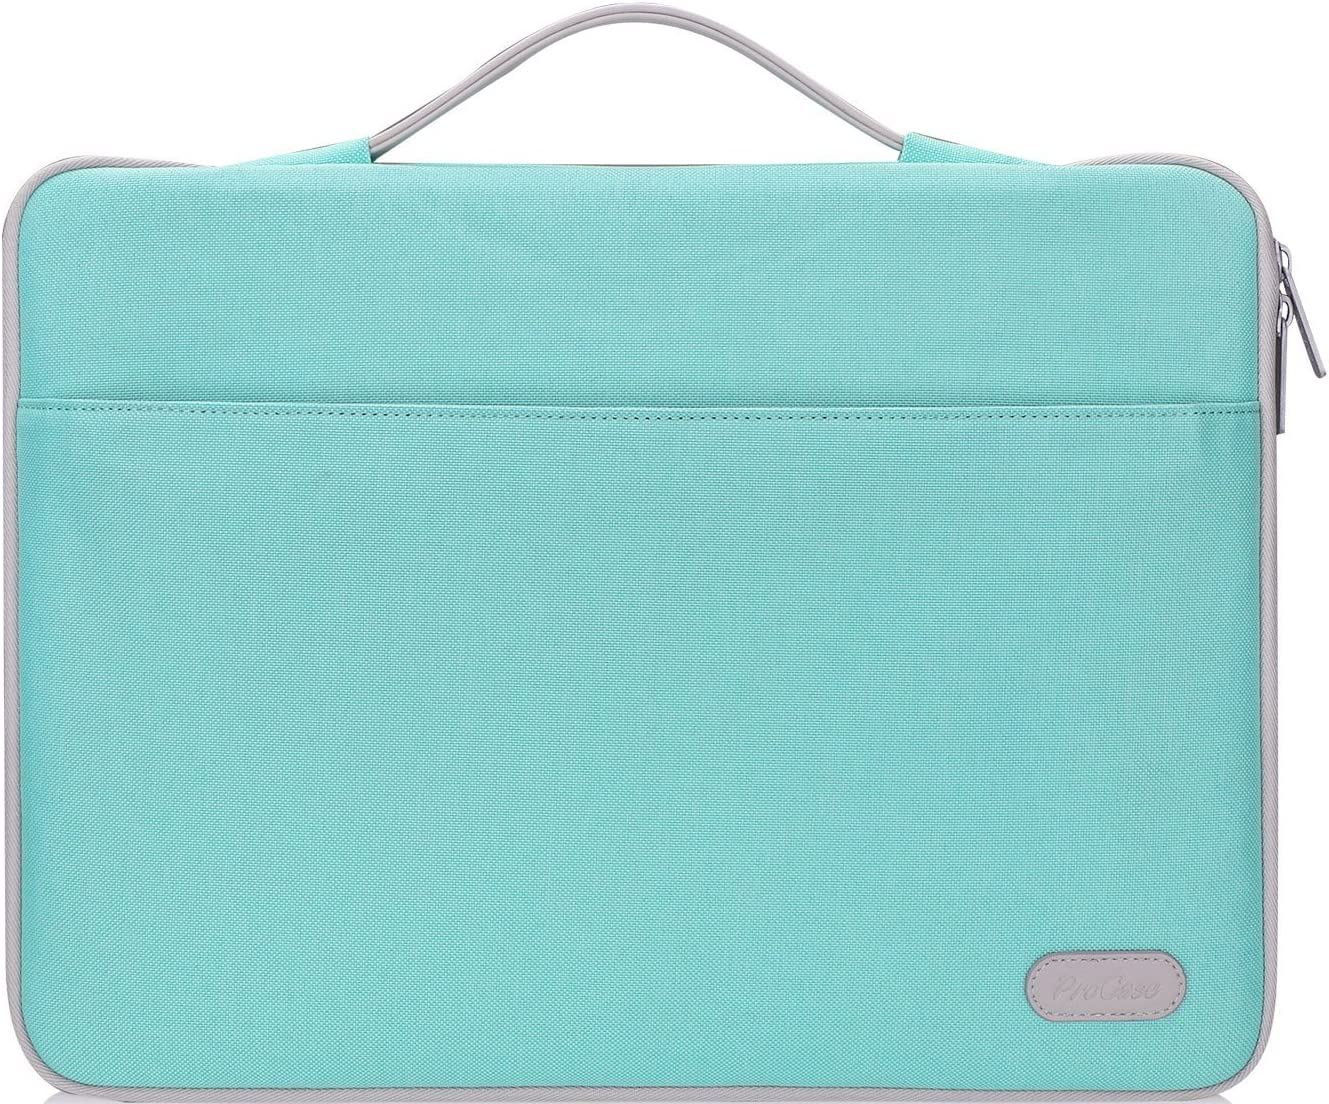 "ProCase 14-15.6 Inch Laptop Sleeve Case Protective Bag, Ultrabook Notebook Carrying Case Handbag for MacBook Pro 16""/14"" 15"" 15.6"" Dell Lenovo HP Asus Acer Samsung Sony Chromebook Computer -Mint Green"